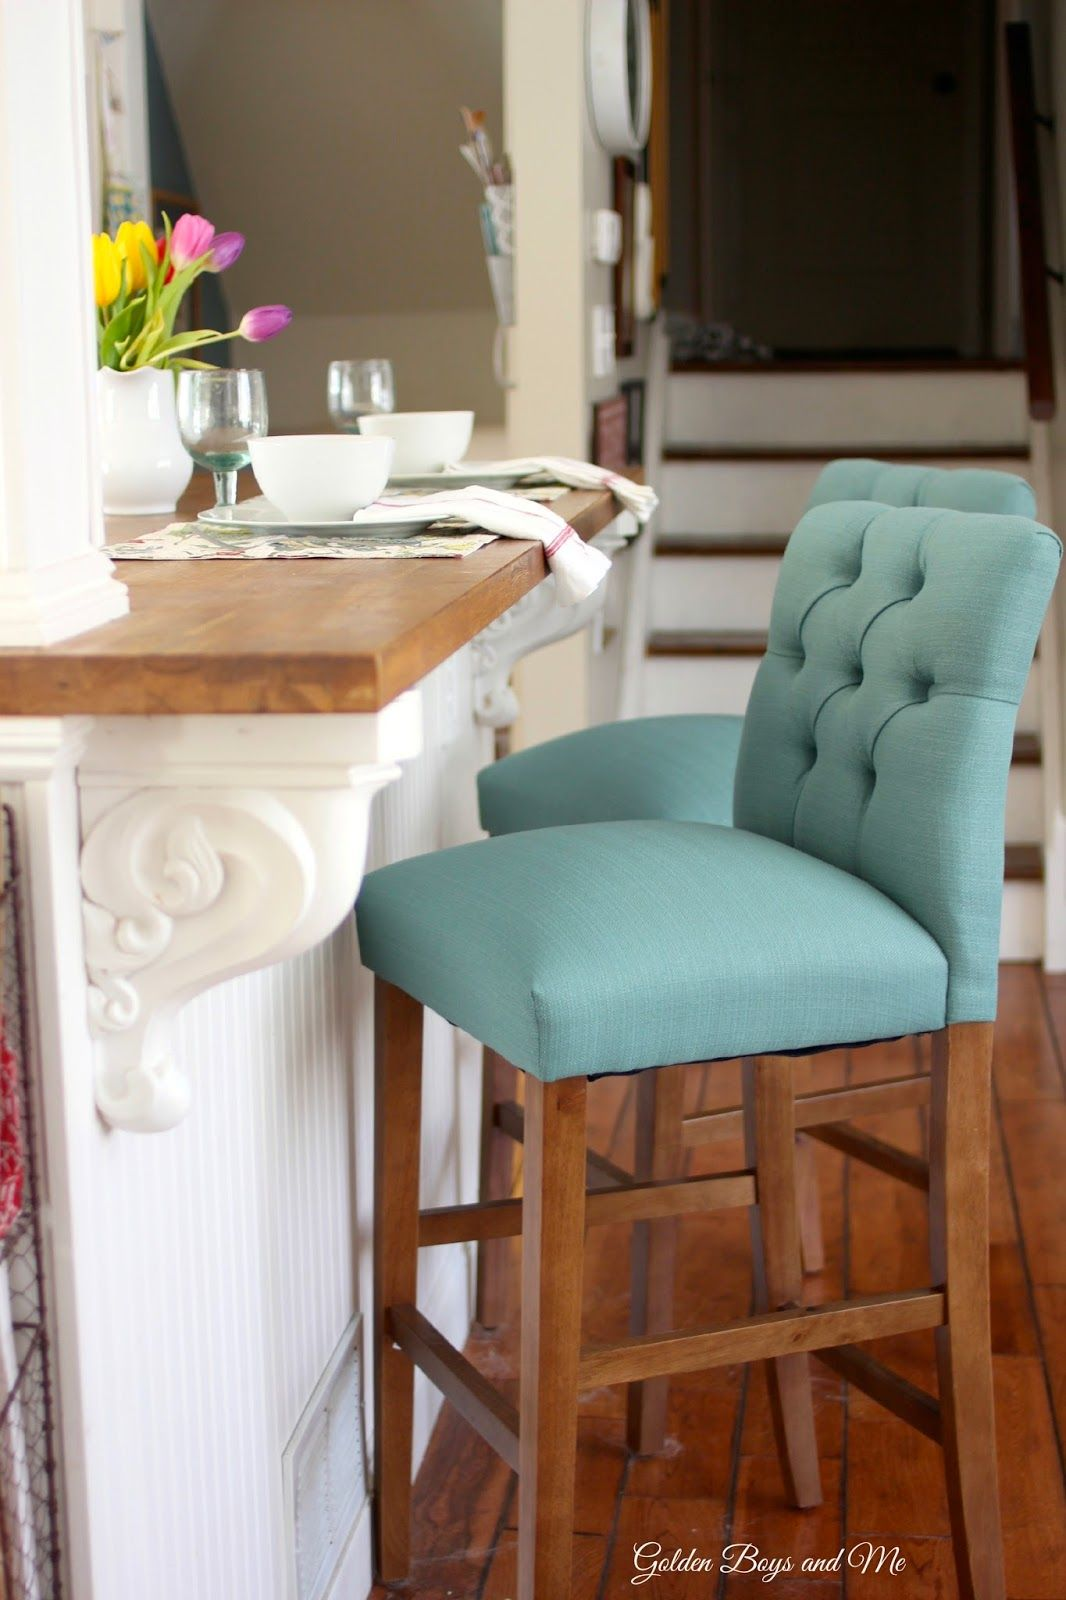 New Barstools | Target threshold, Block island and Butcher blocks